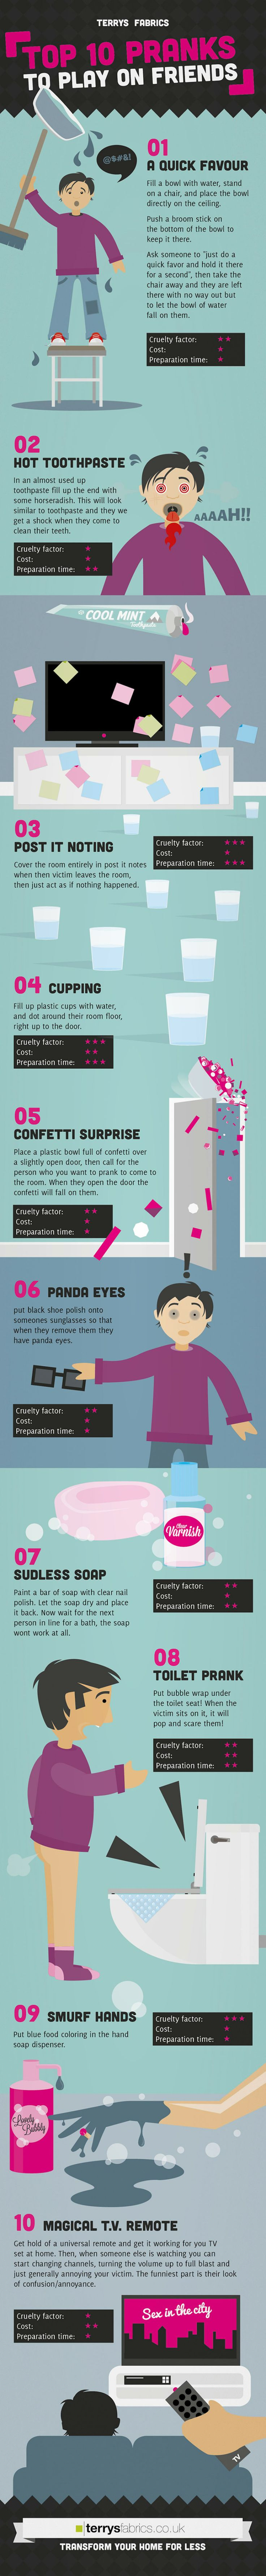 Top ten pranks to play on friends Infographic